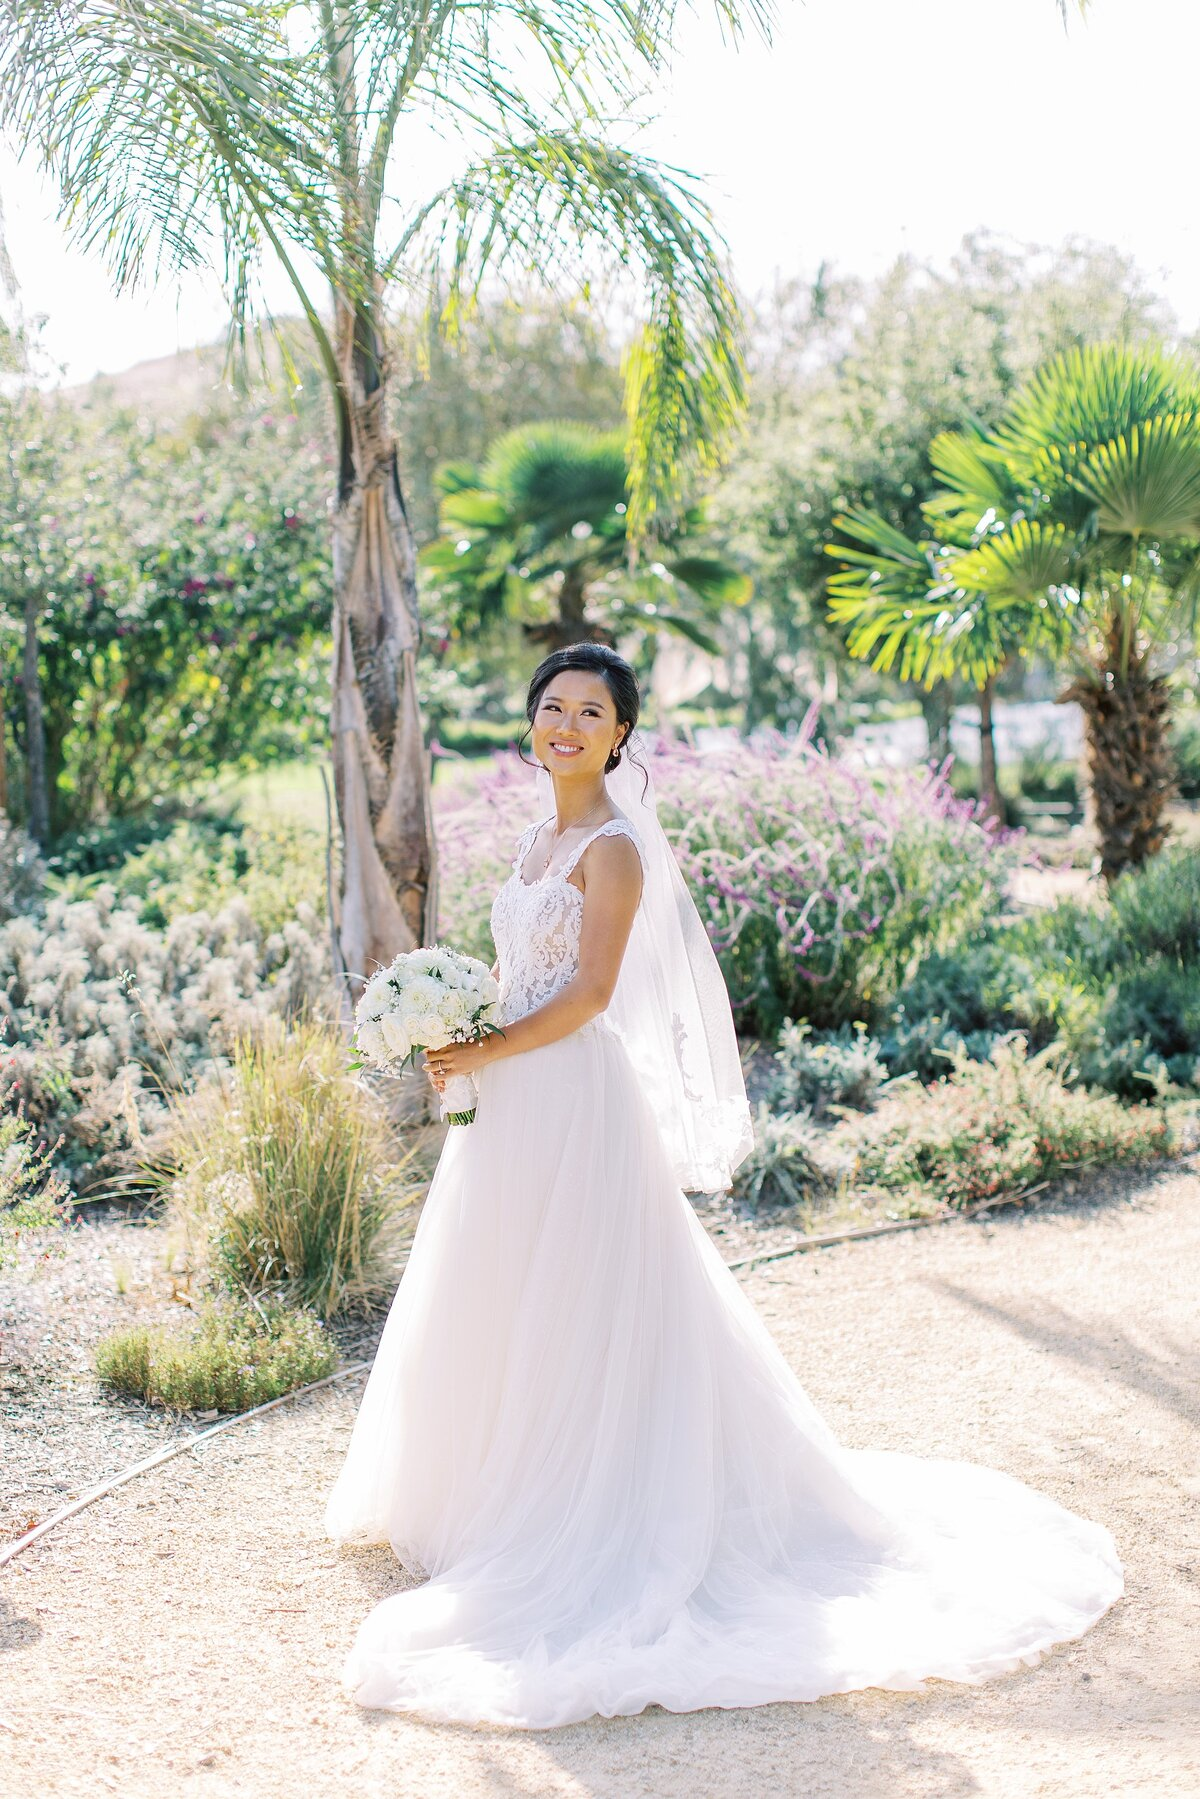 20190928Cammane and Simon's Vineyard Wedding_Nella Terra Cellars_Sunol_Bethany Picone Photography - 073_WEB